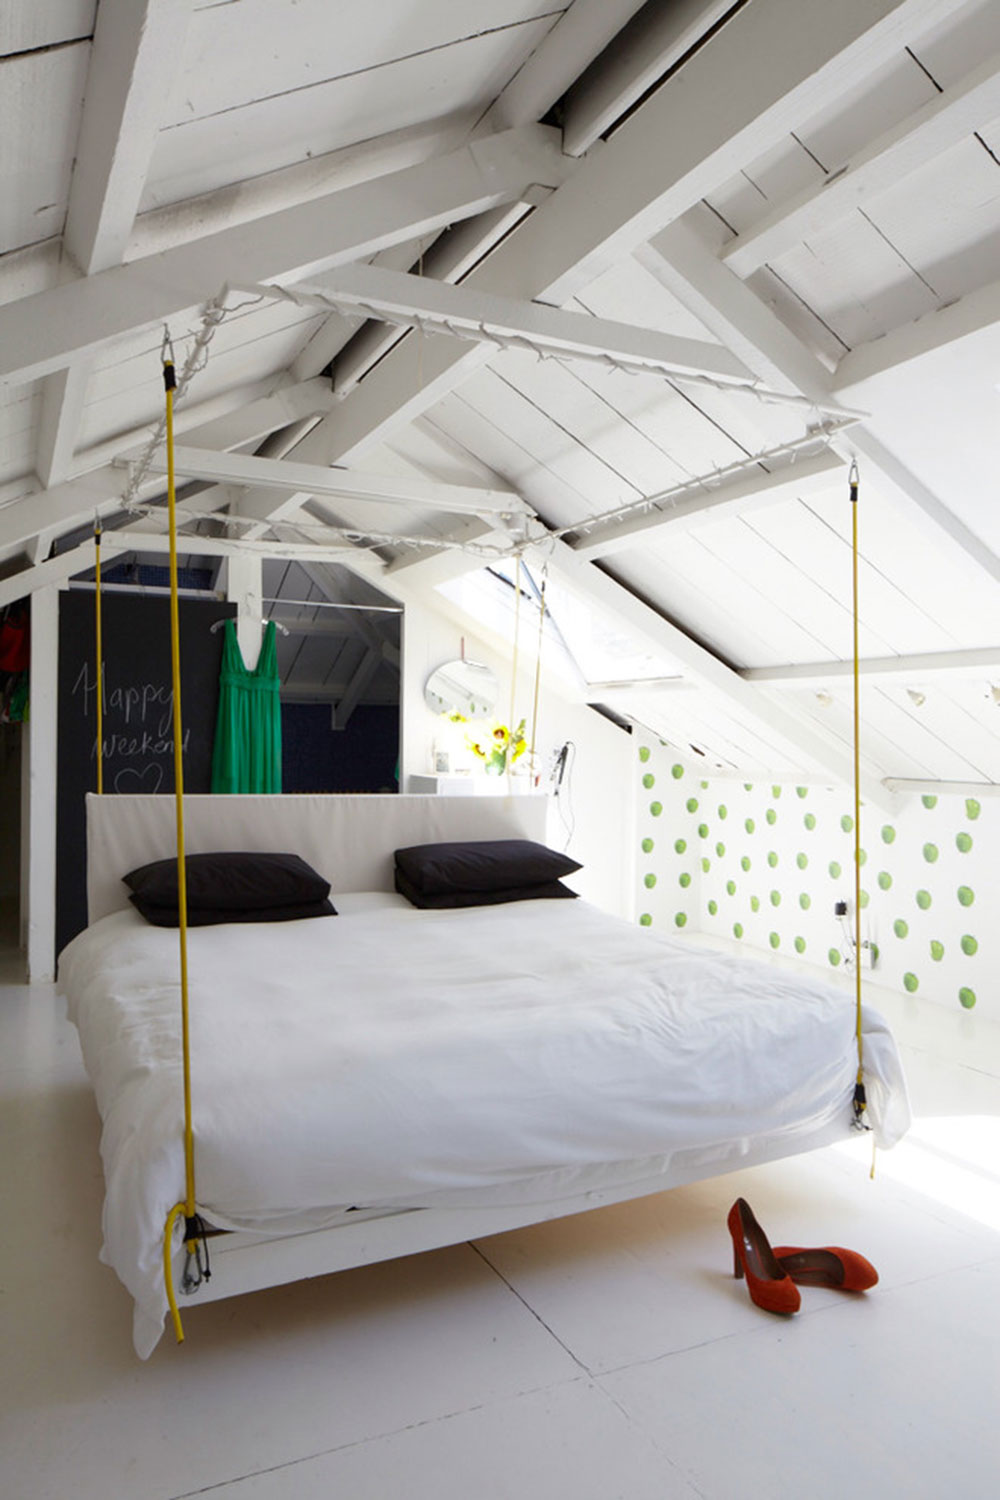 Creative Hanging Bed Ideas For Amazing Houses 9 Creative Hanging Bed Ideas For Amazing Houses